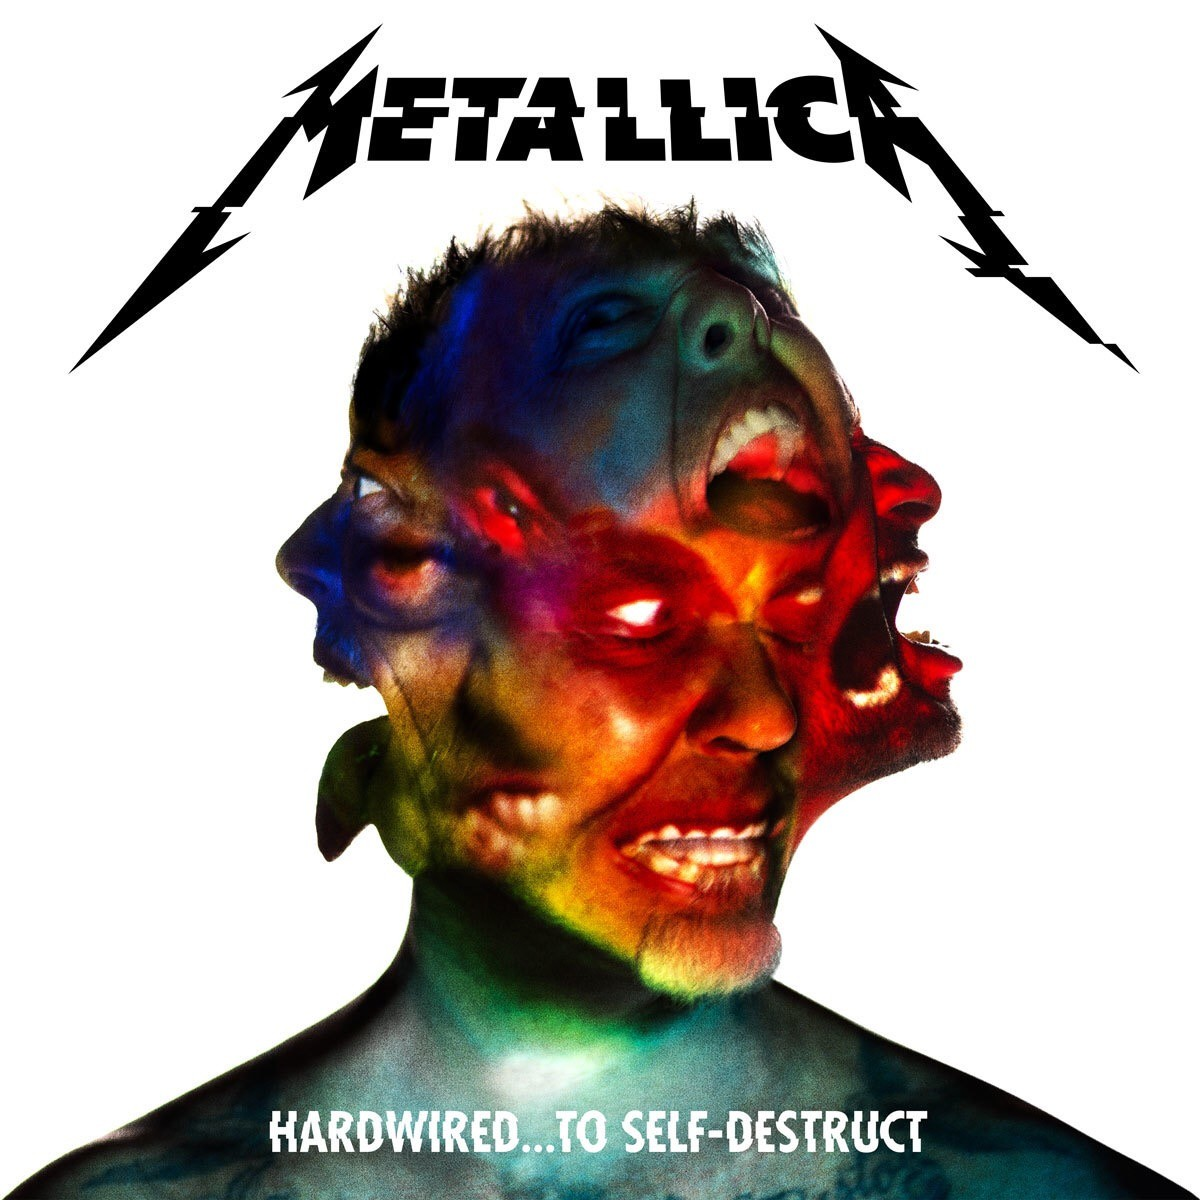 Metallica zurück nach 8 Jahren mit Album HARDWIRED…TO SELF-DESTRUCT